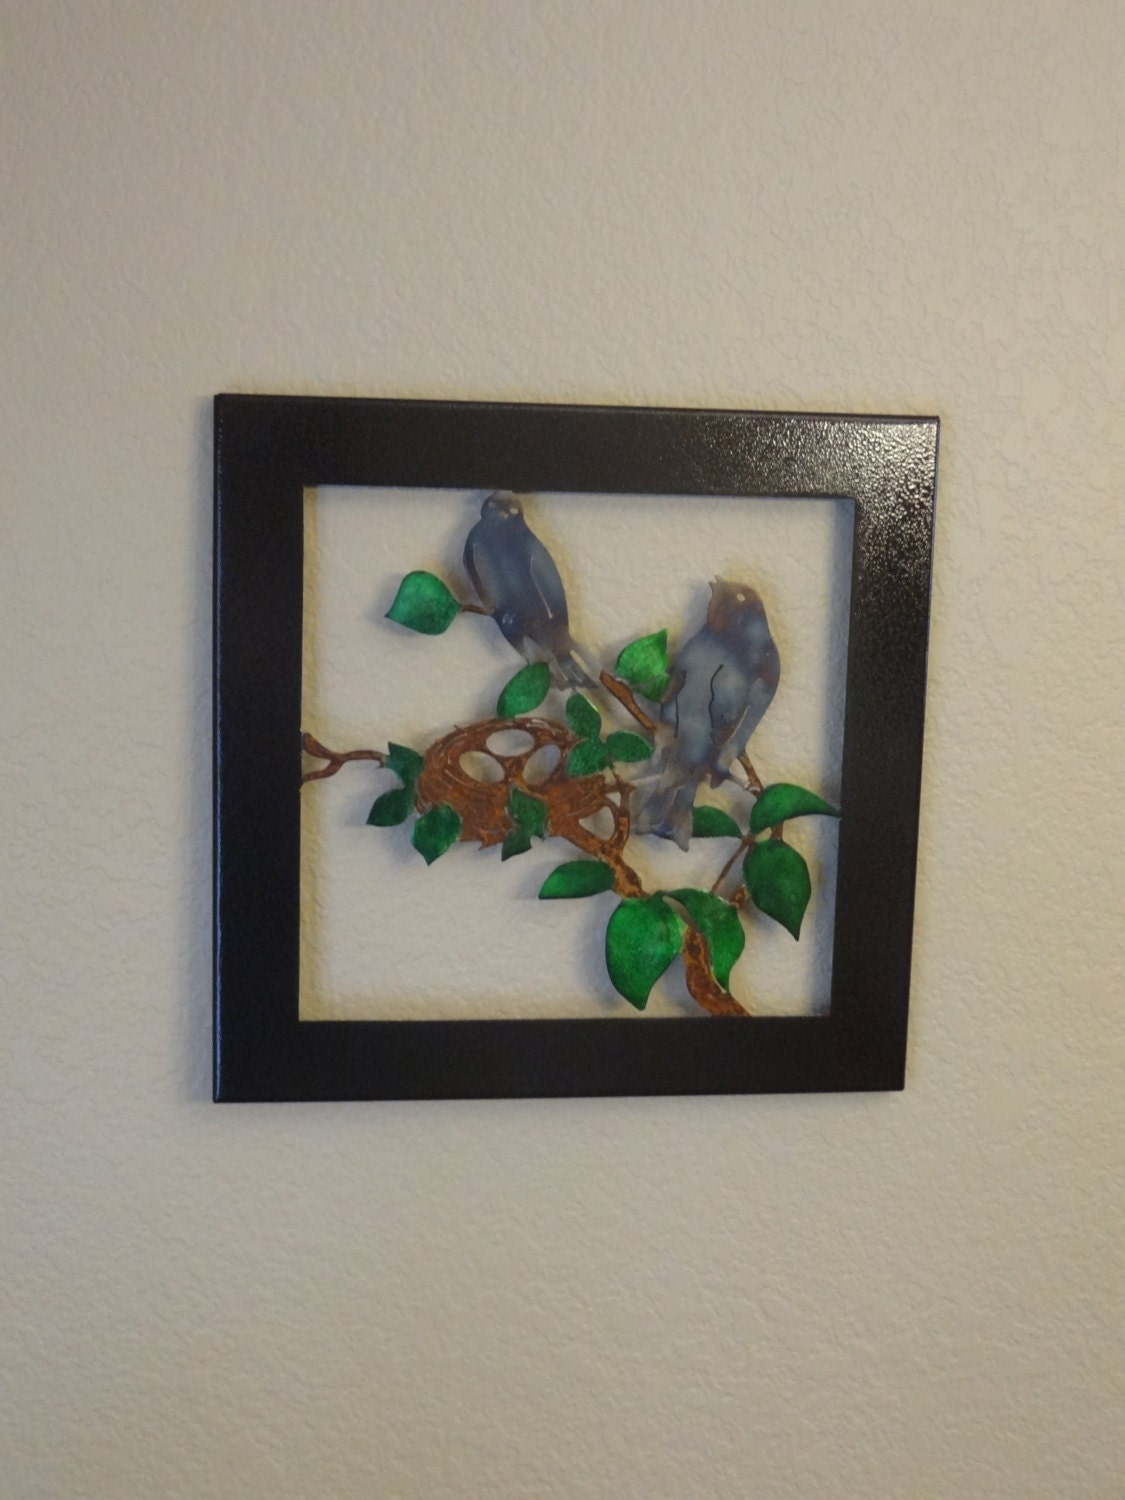 Metal Wall Decor With Birds : Birds in a tree metal art wall decor